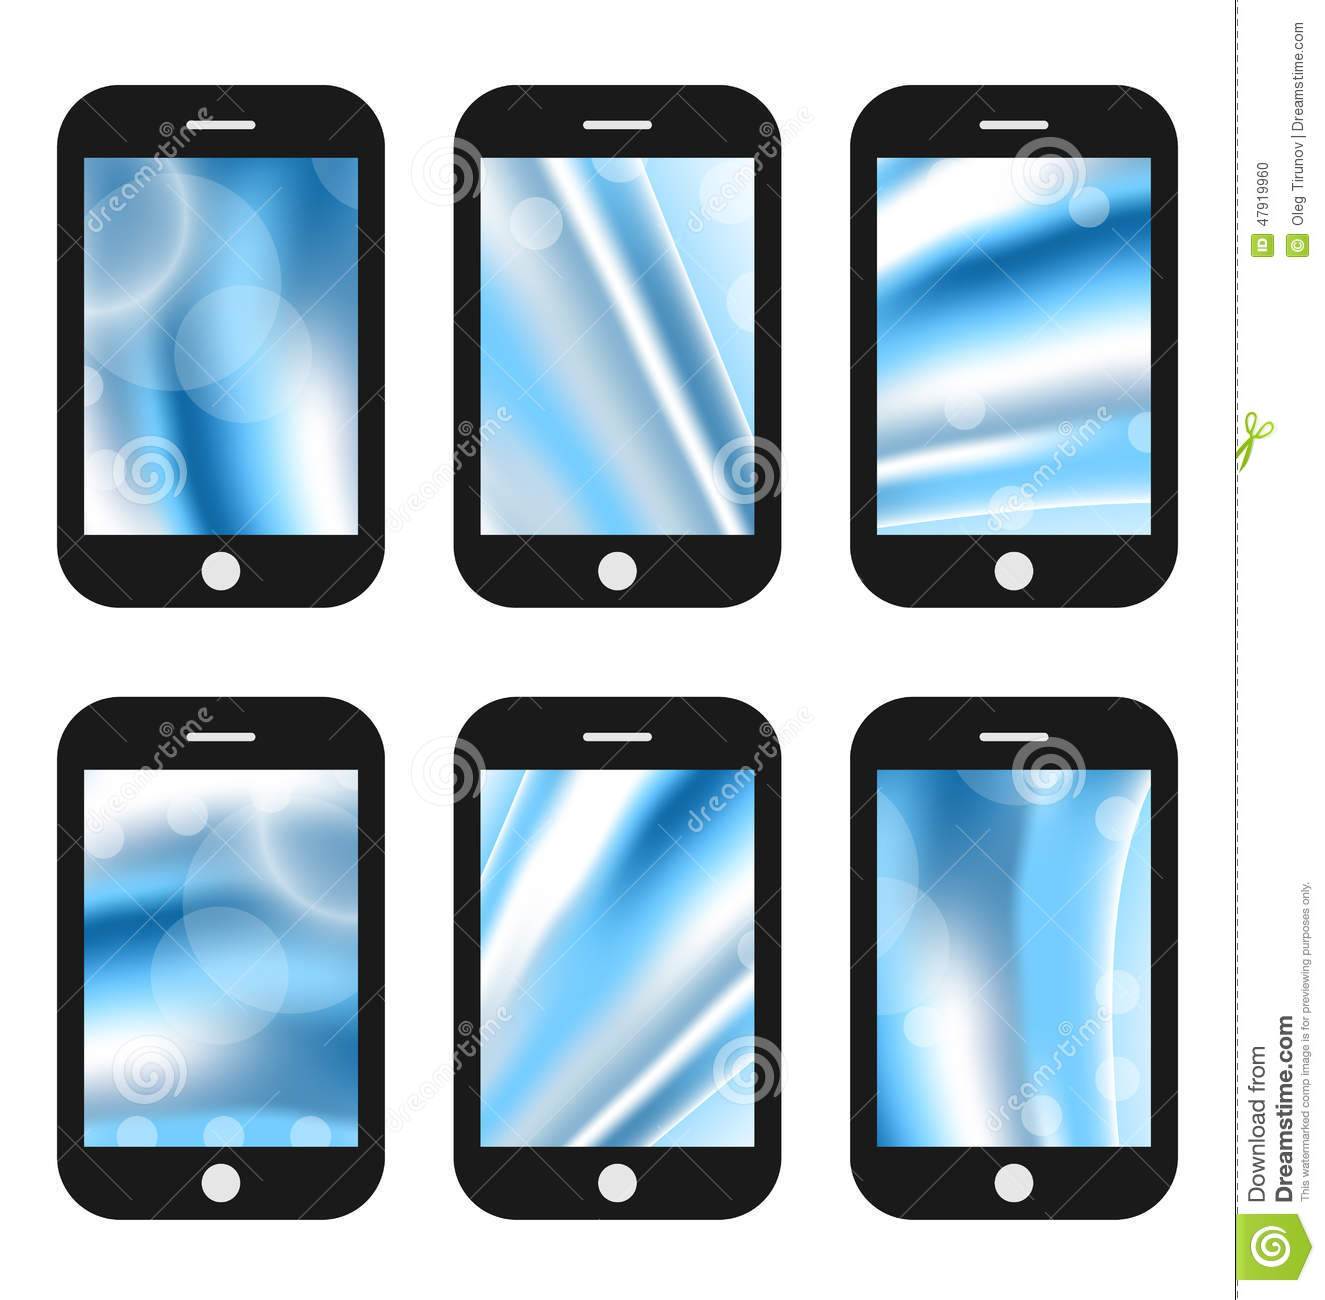 Abstract Splash Screens For Mobile Phones App With